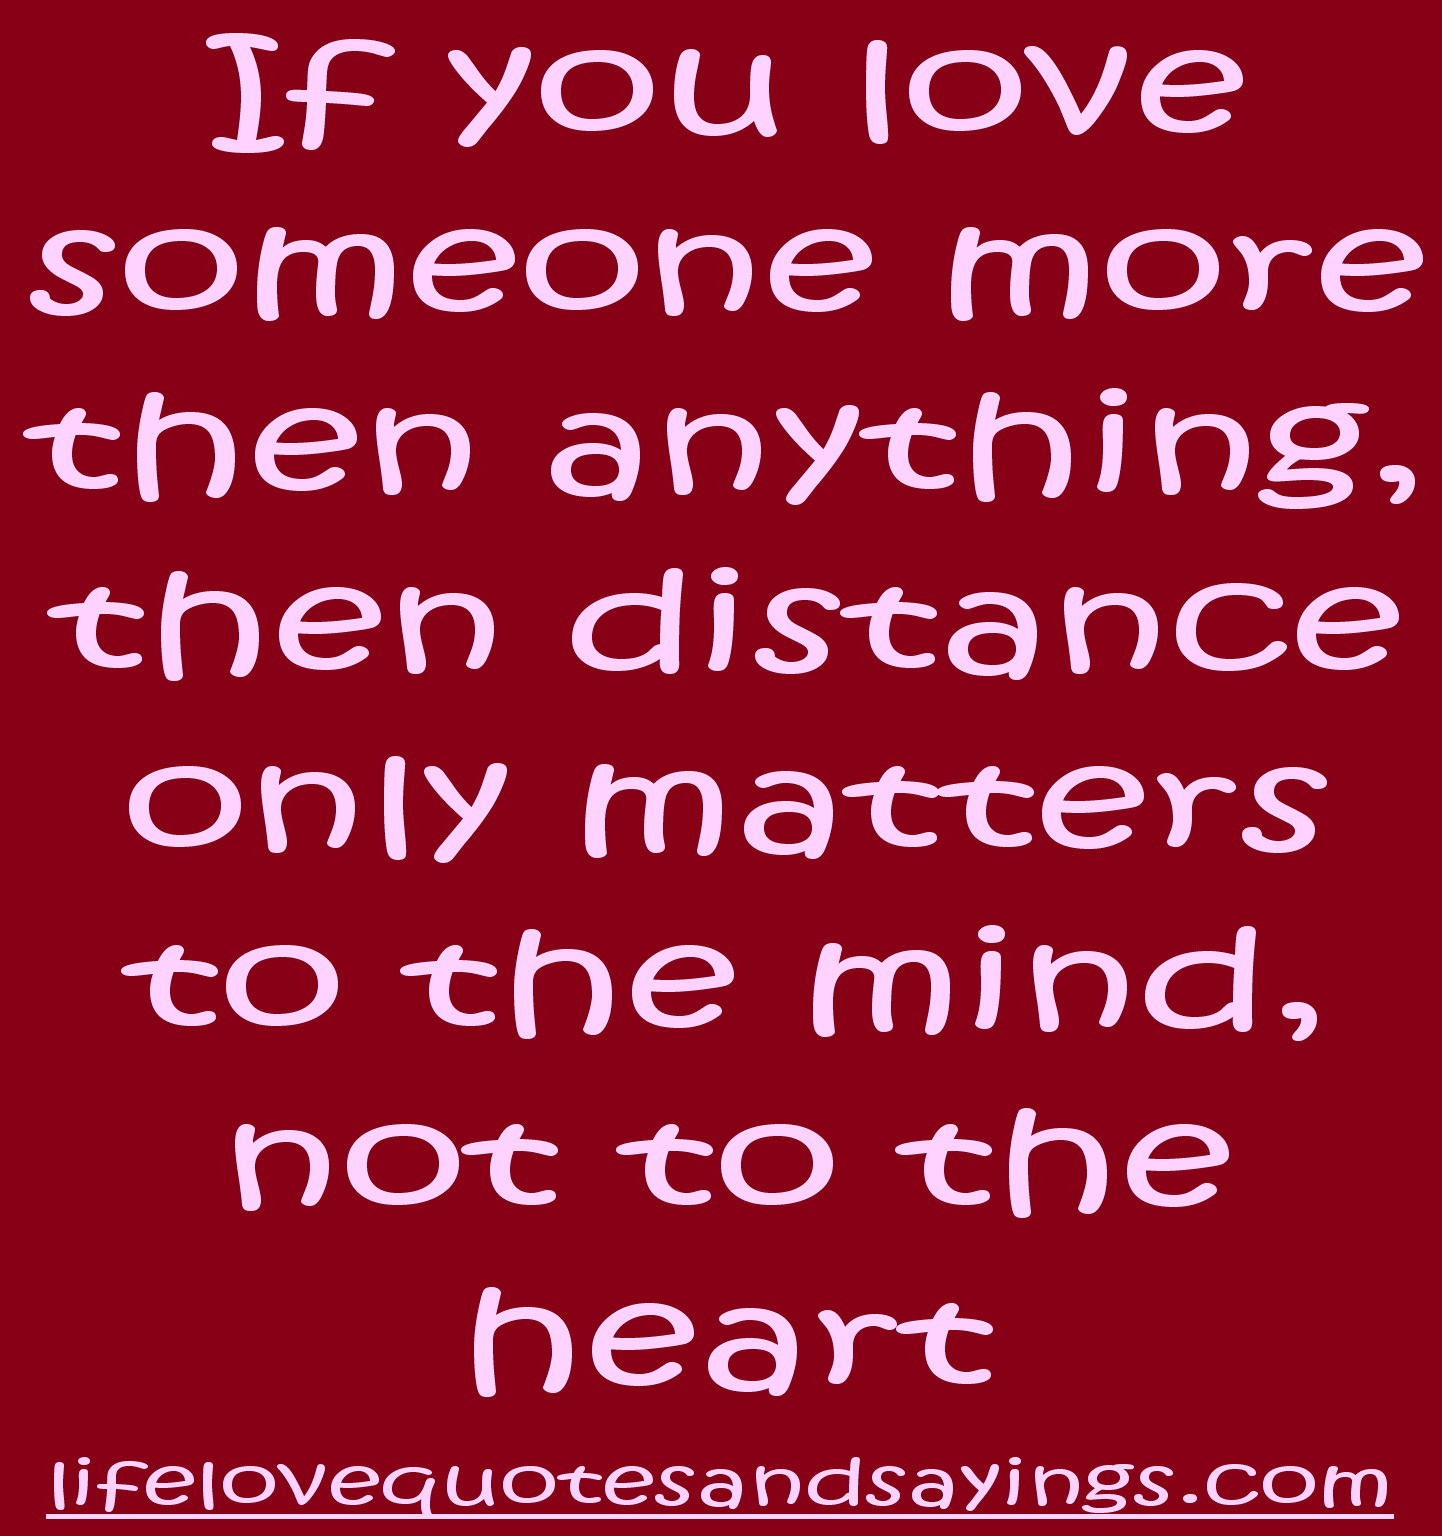 Quotes About Love For Him: True Heart Quotes. QuotesGram